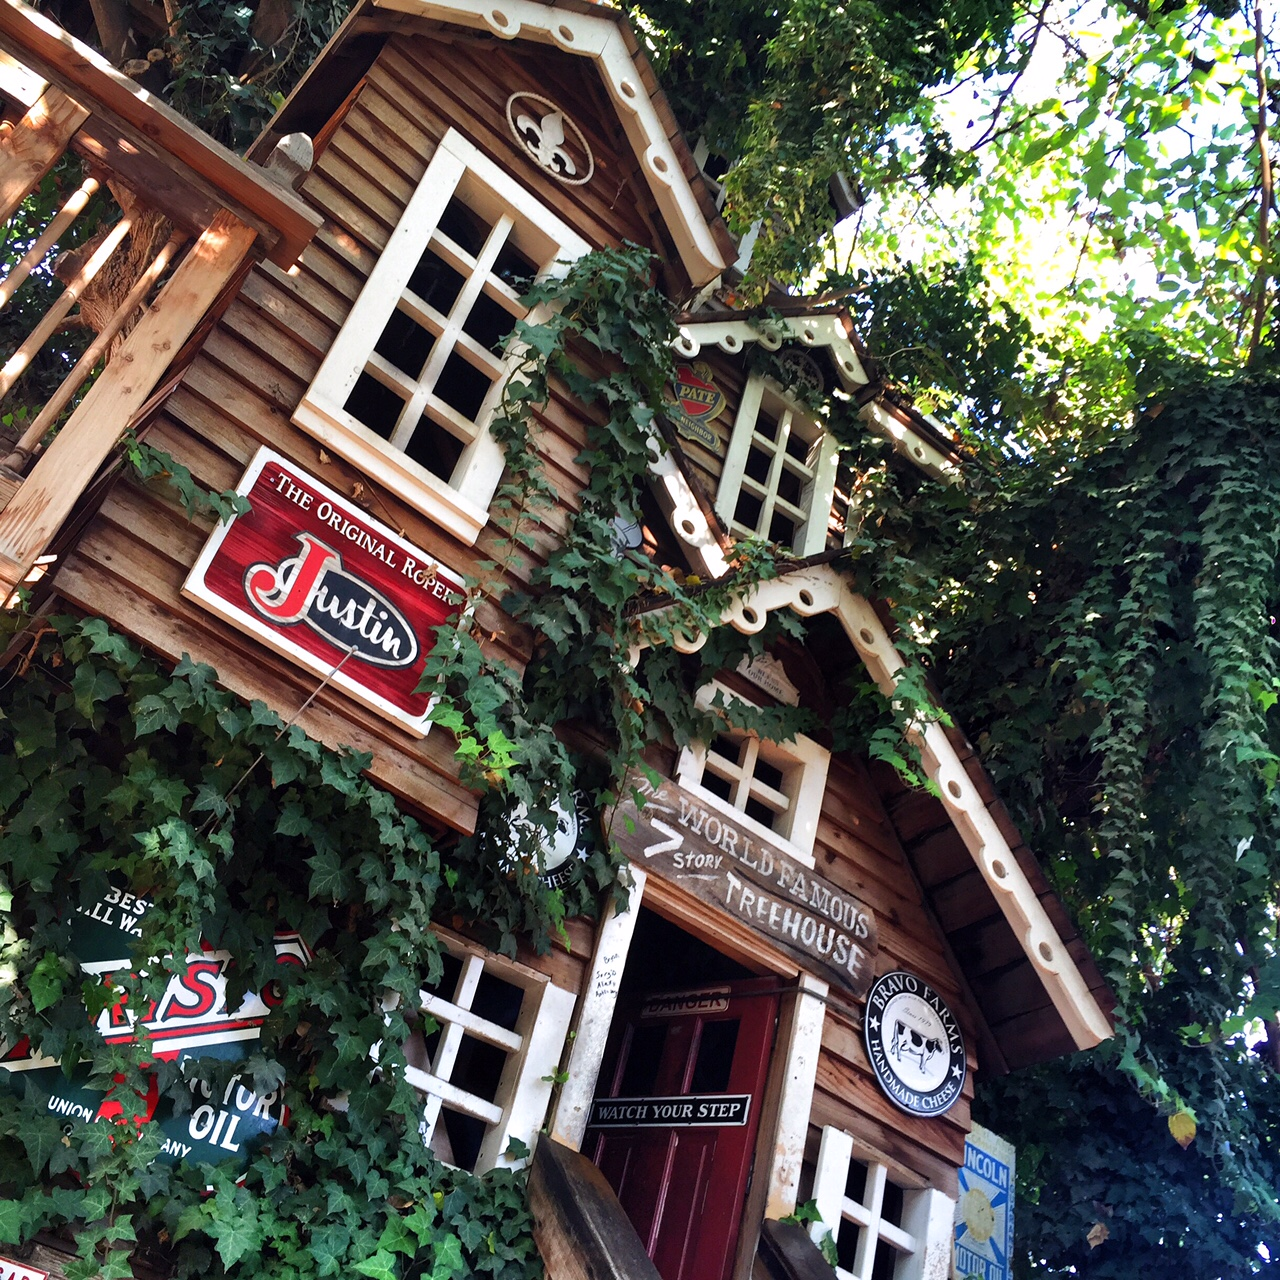 The World S Largest Treehouse At Bravo Farms Oc Mom Blog